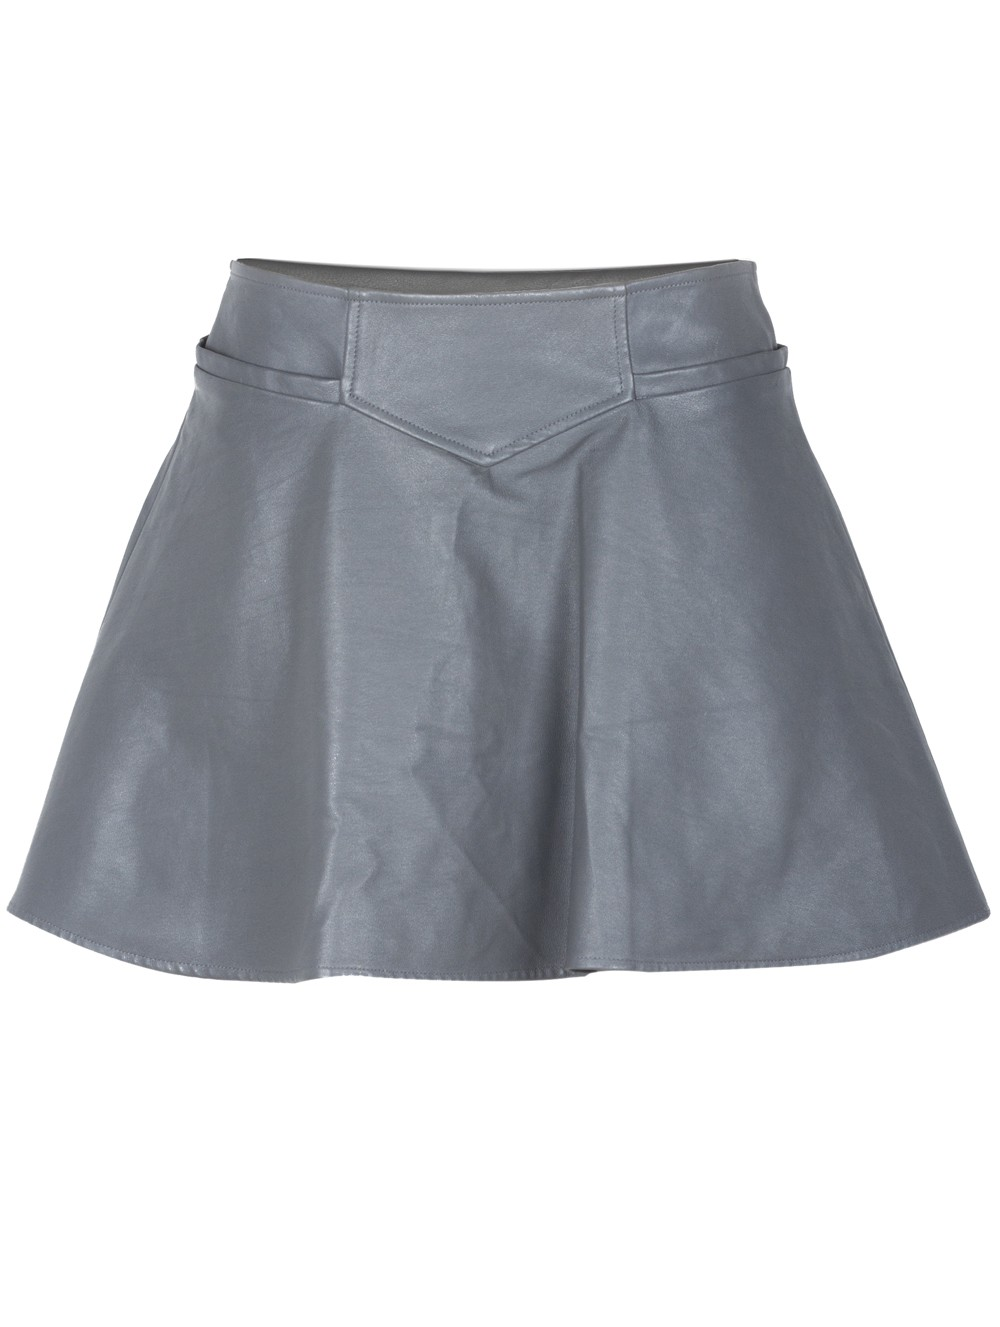 thakoon addition flared leather skirt in gray grey lyst